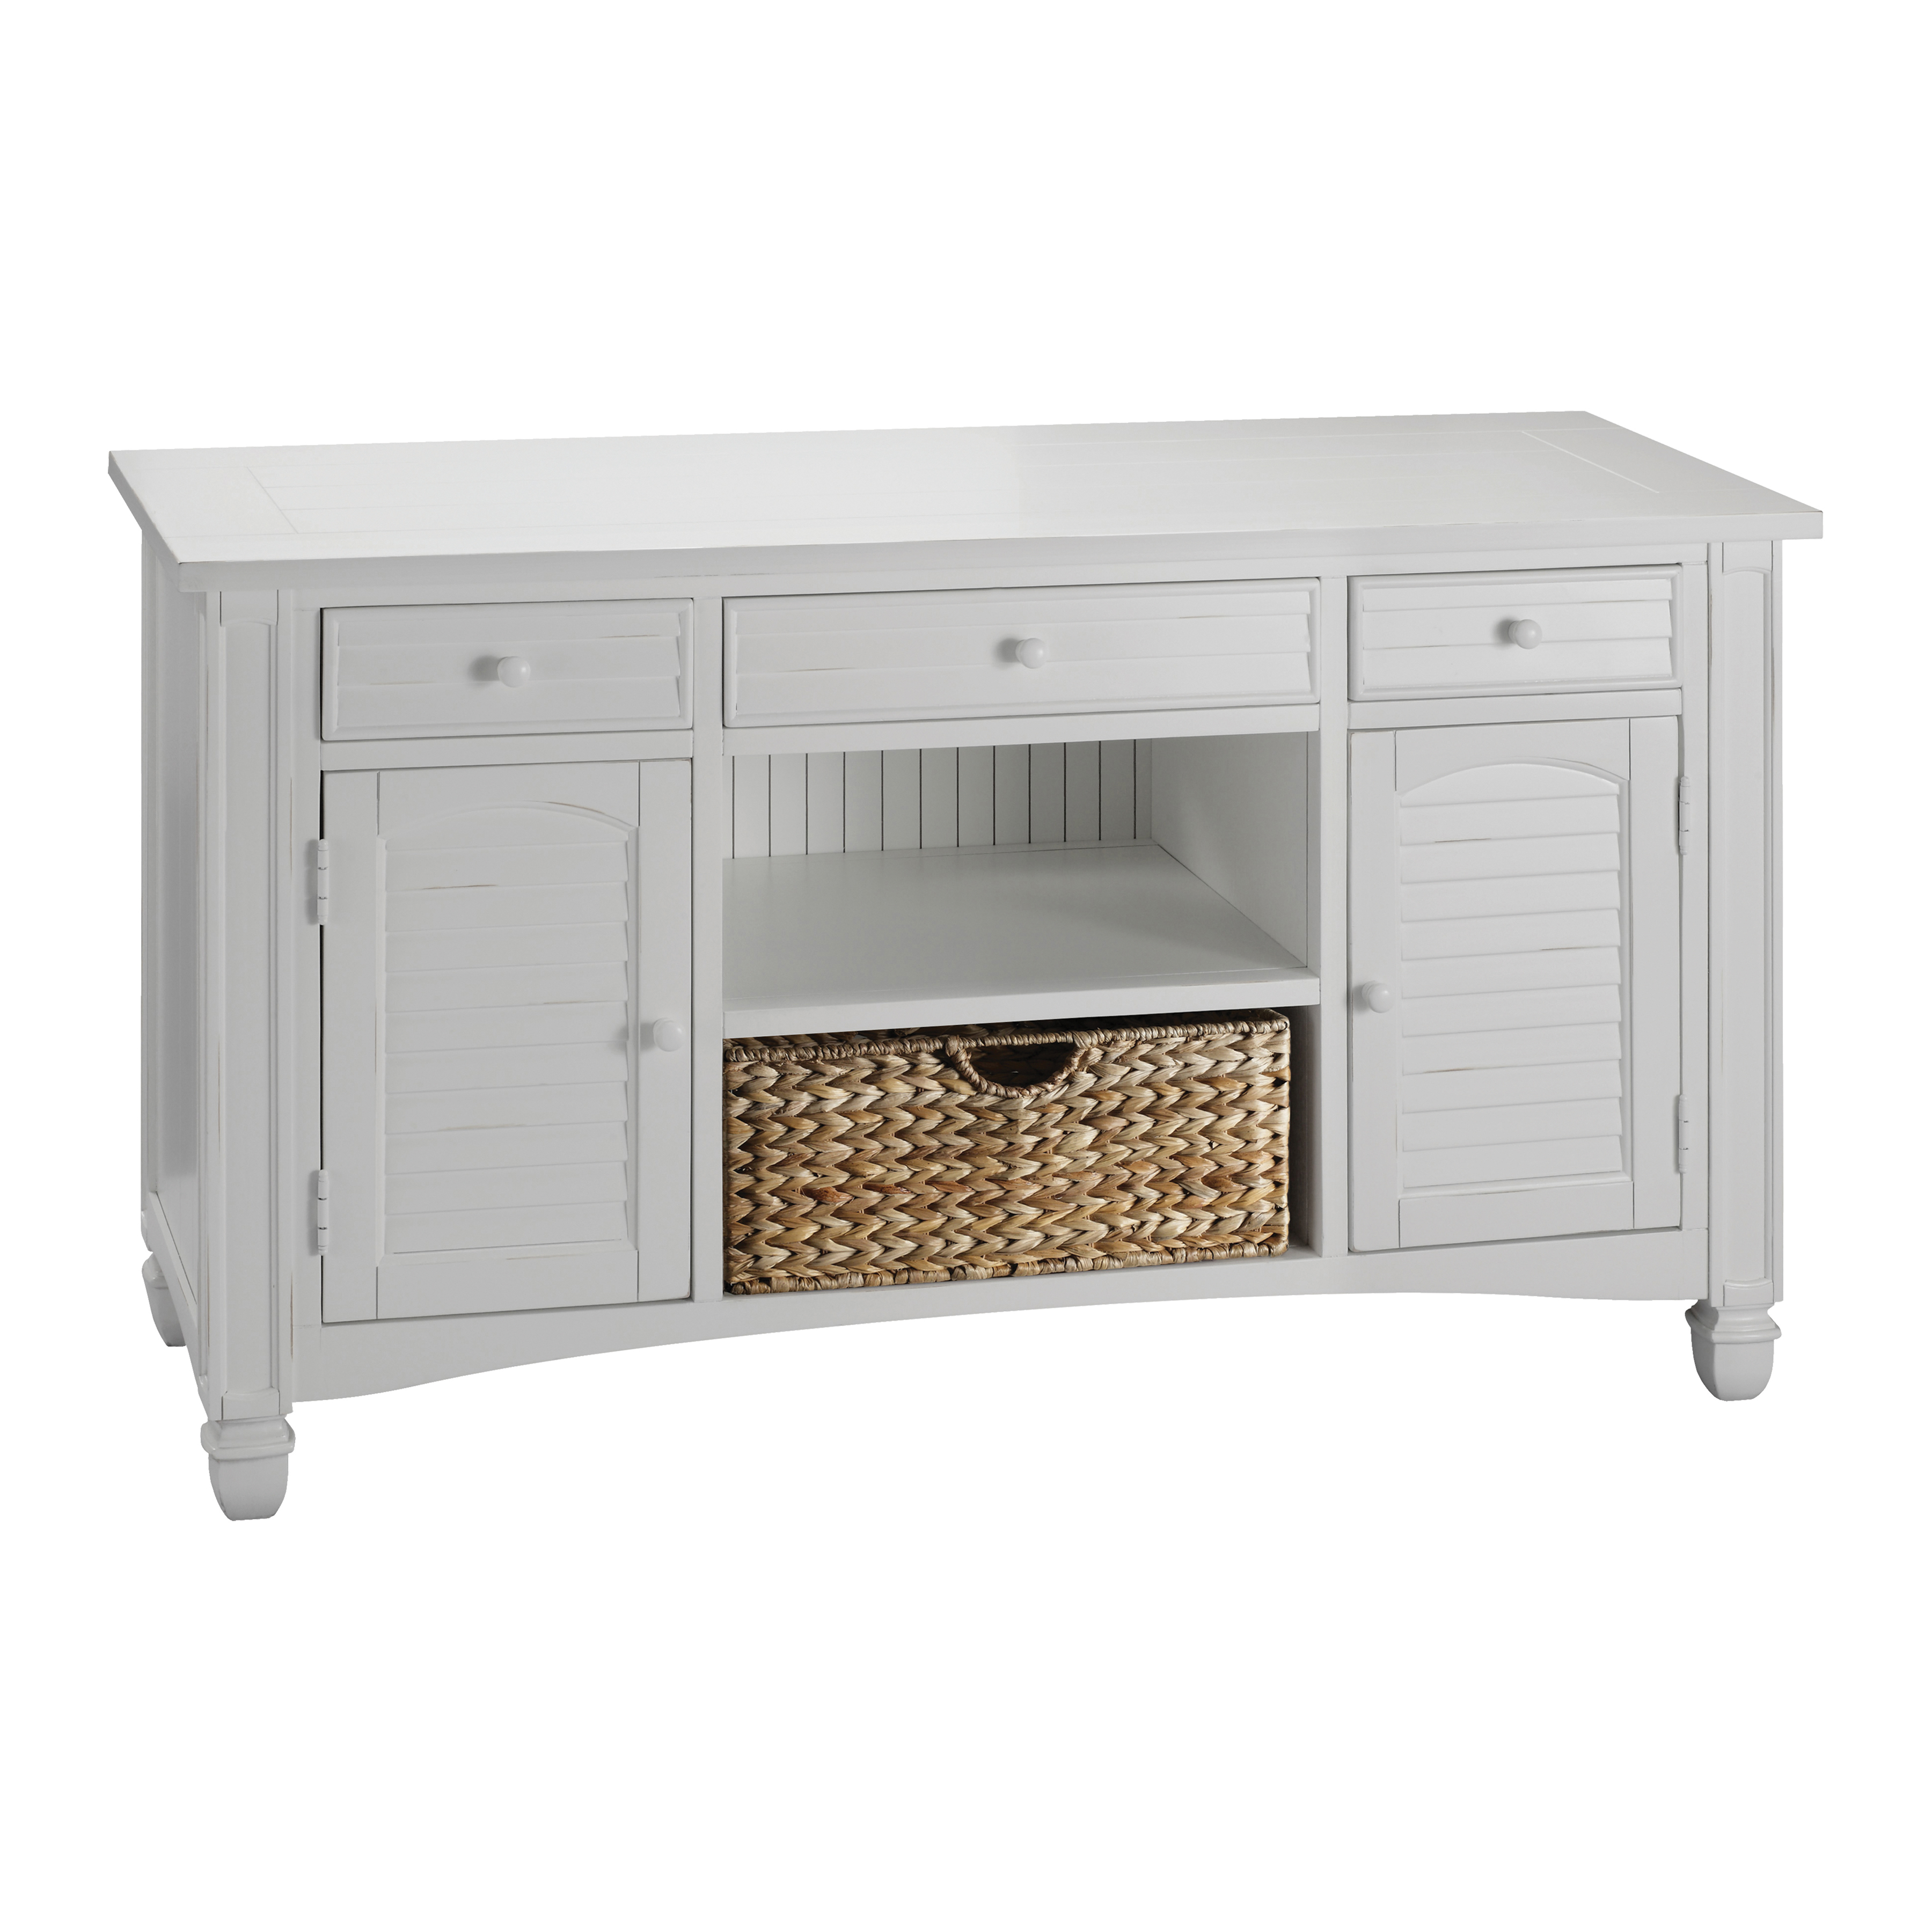 Nantucket 2-Door 3-Drawer Console Table in White with Basket 679-031 | ELK Home